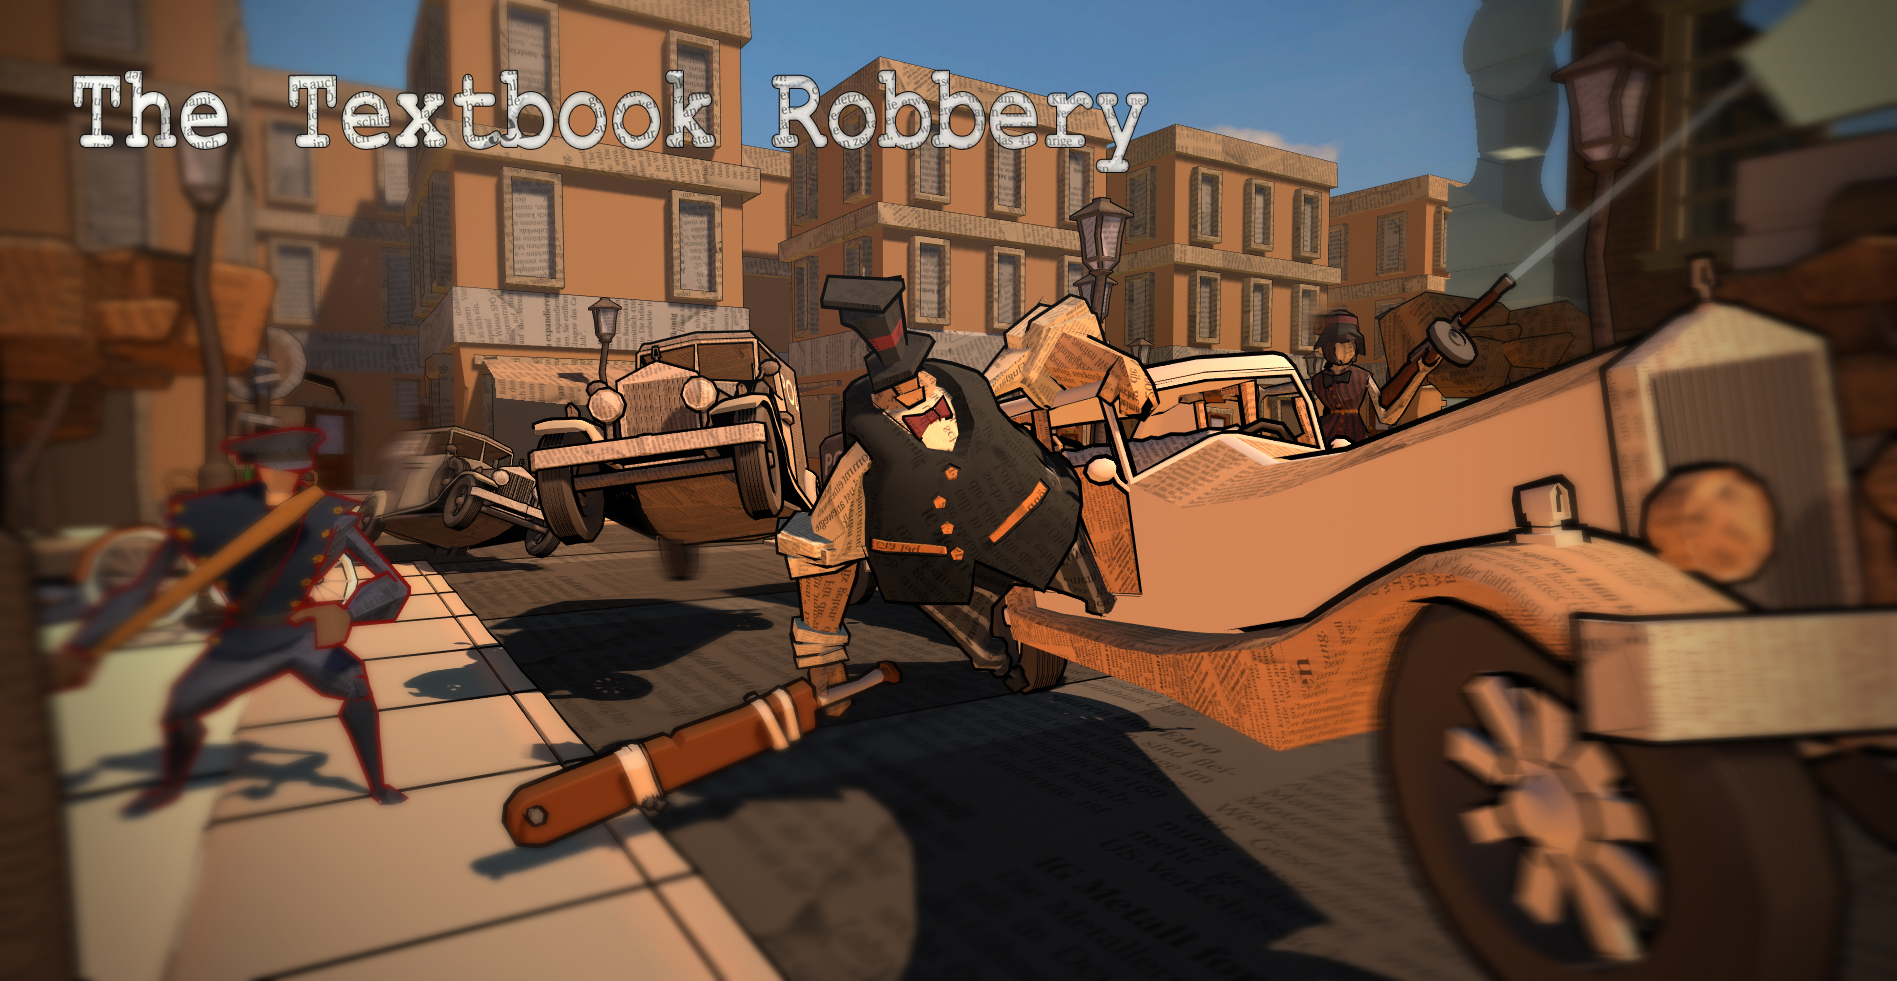 The Textbook Robbery